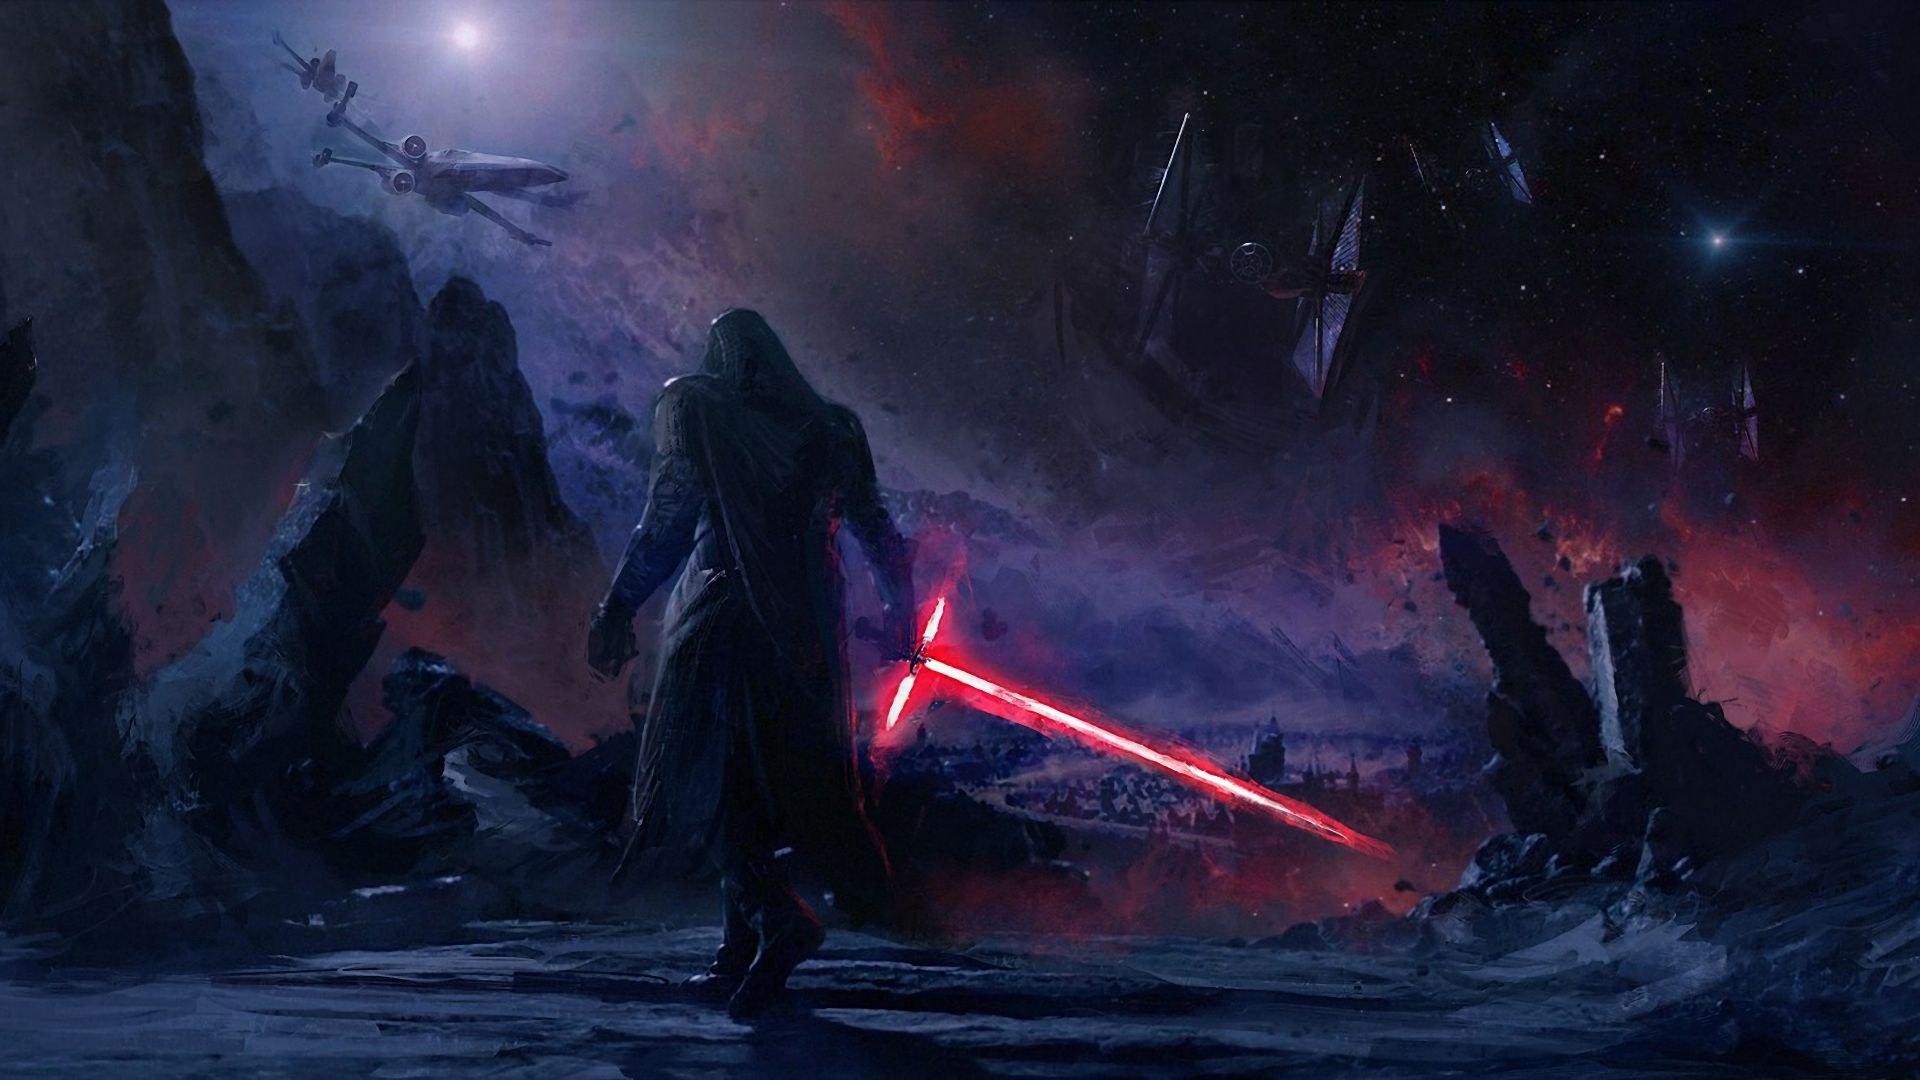 1366x768 Kylo Ren Star Wars Art 1366x768 Resolution Wallpaper Hd Artist 4k Wallpapers Images Photos And Background